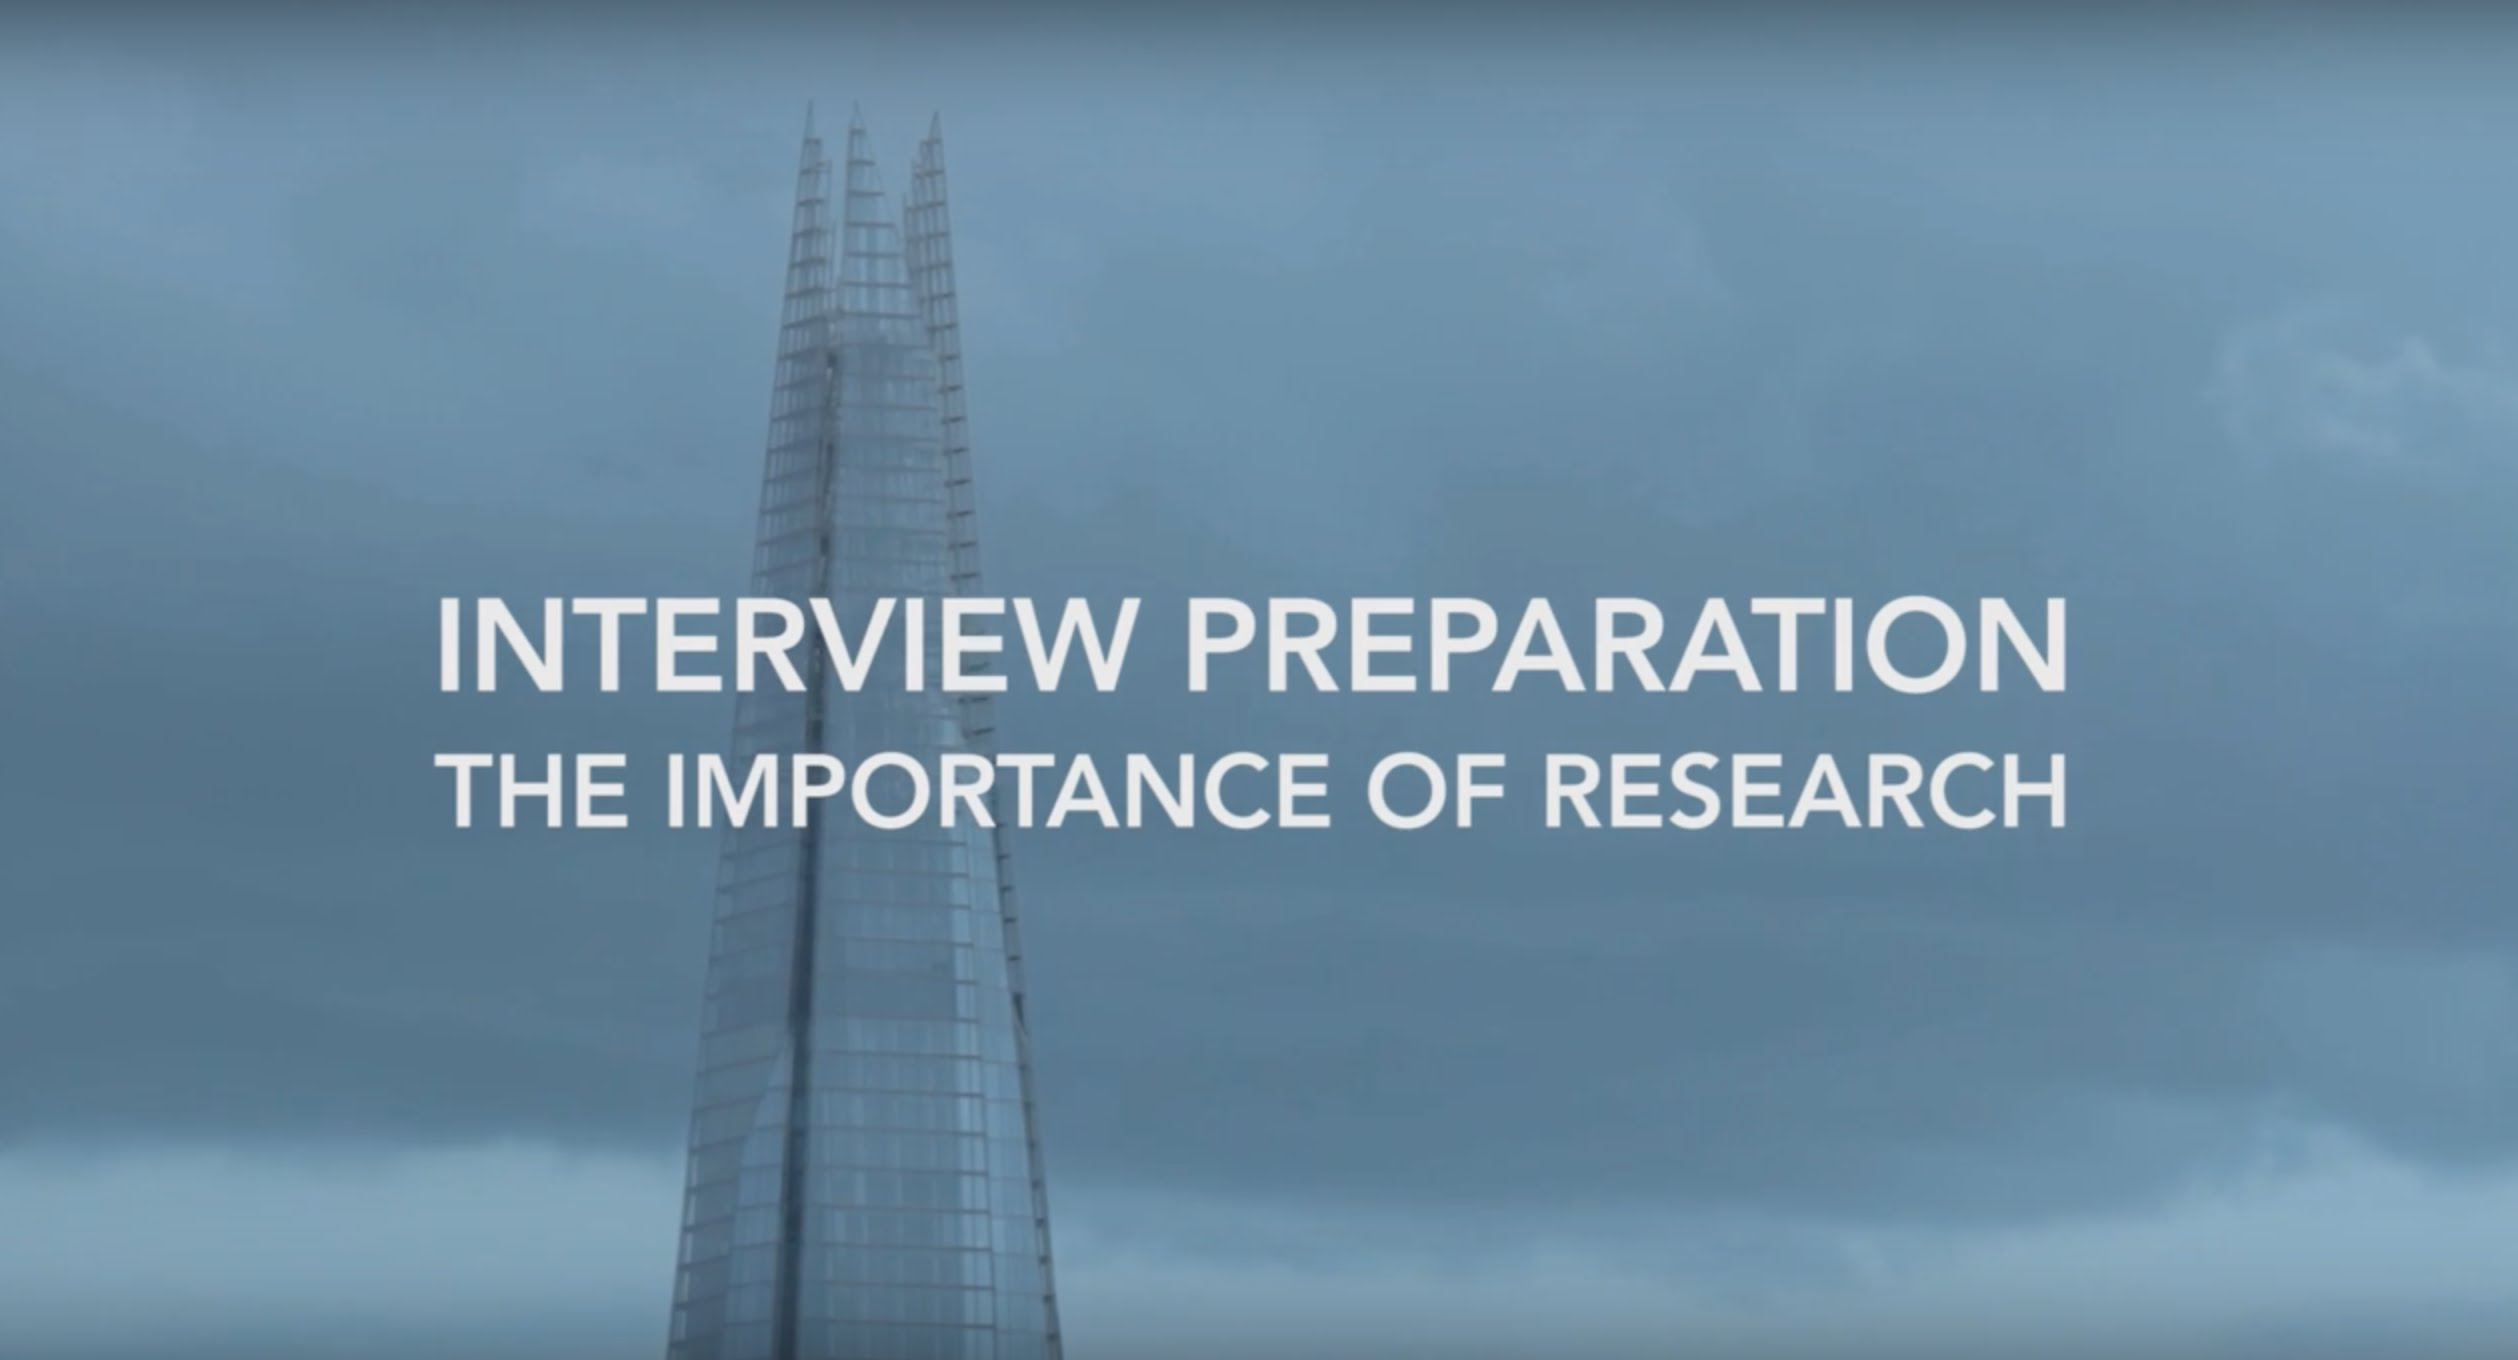 Interview Preparation The Importance Of Research